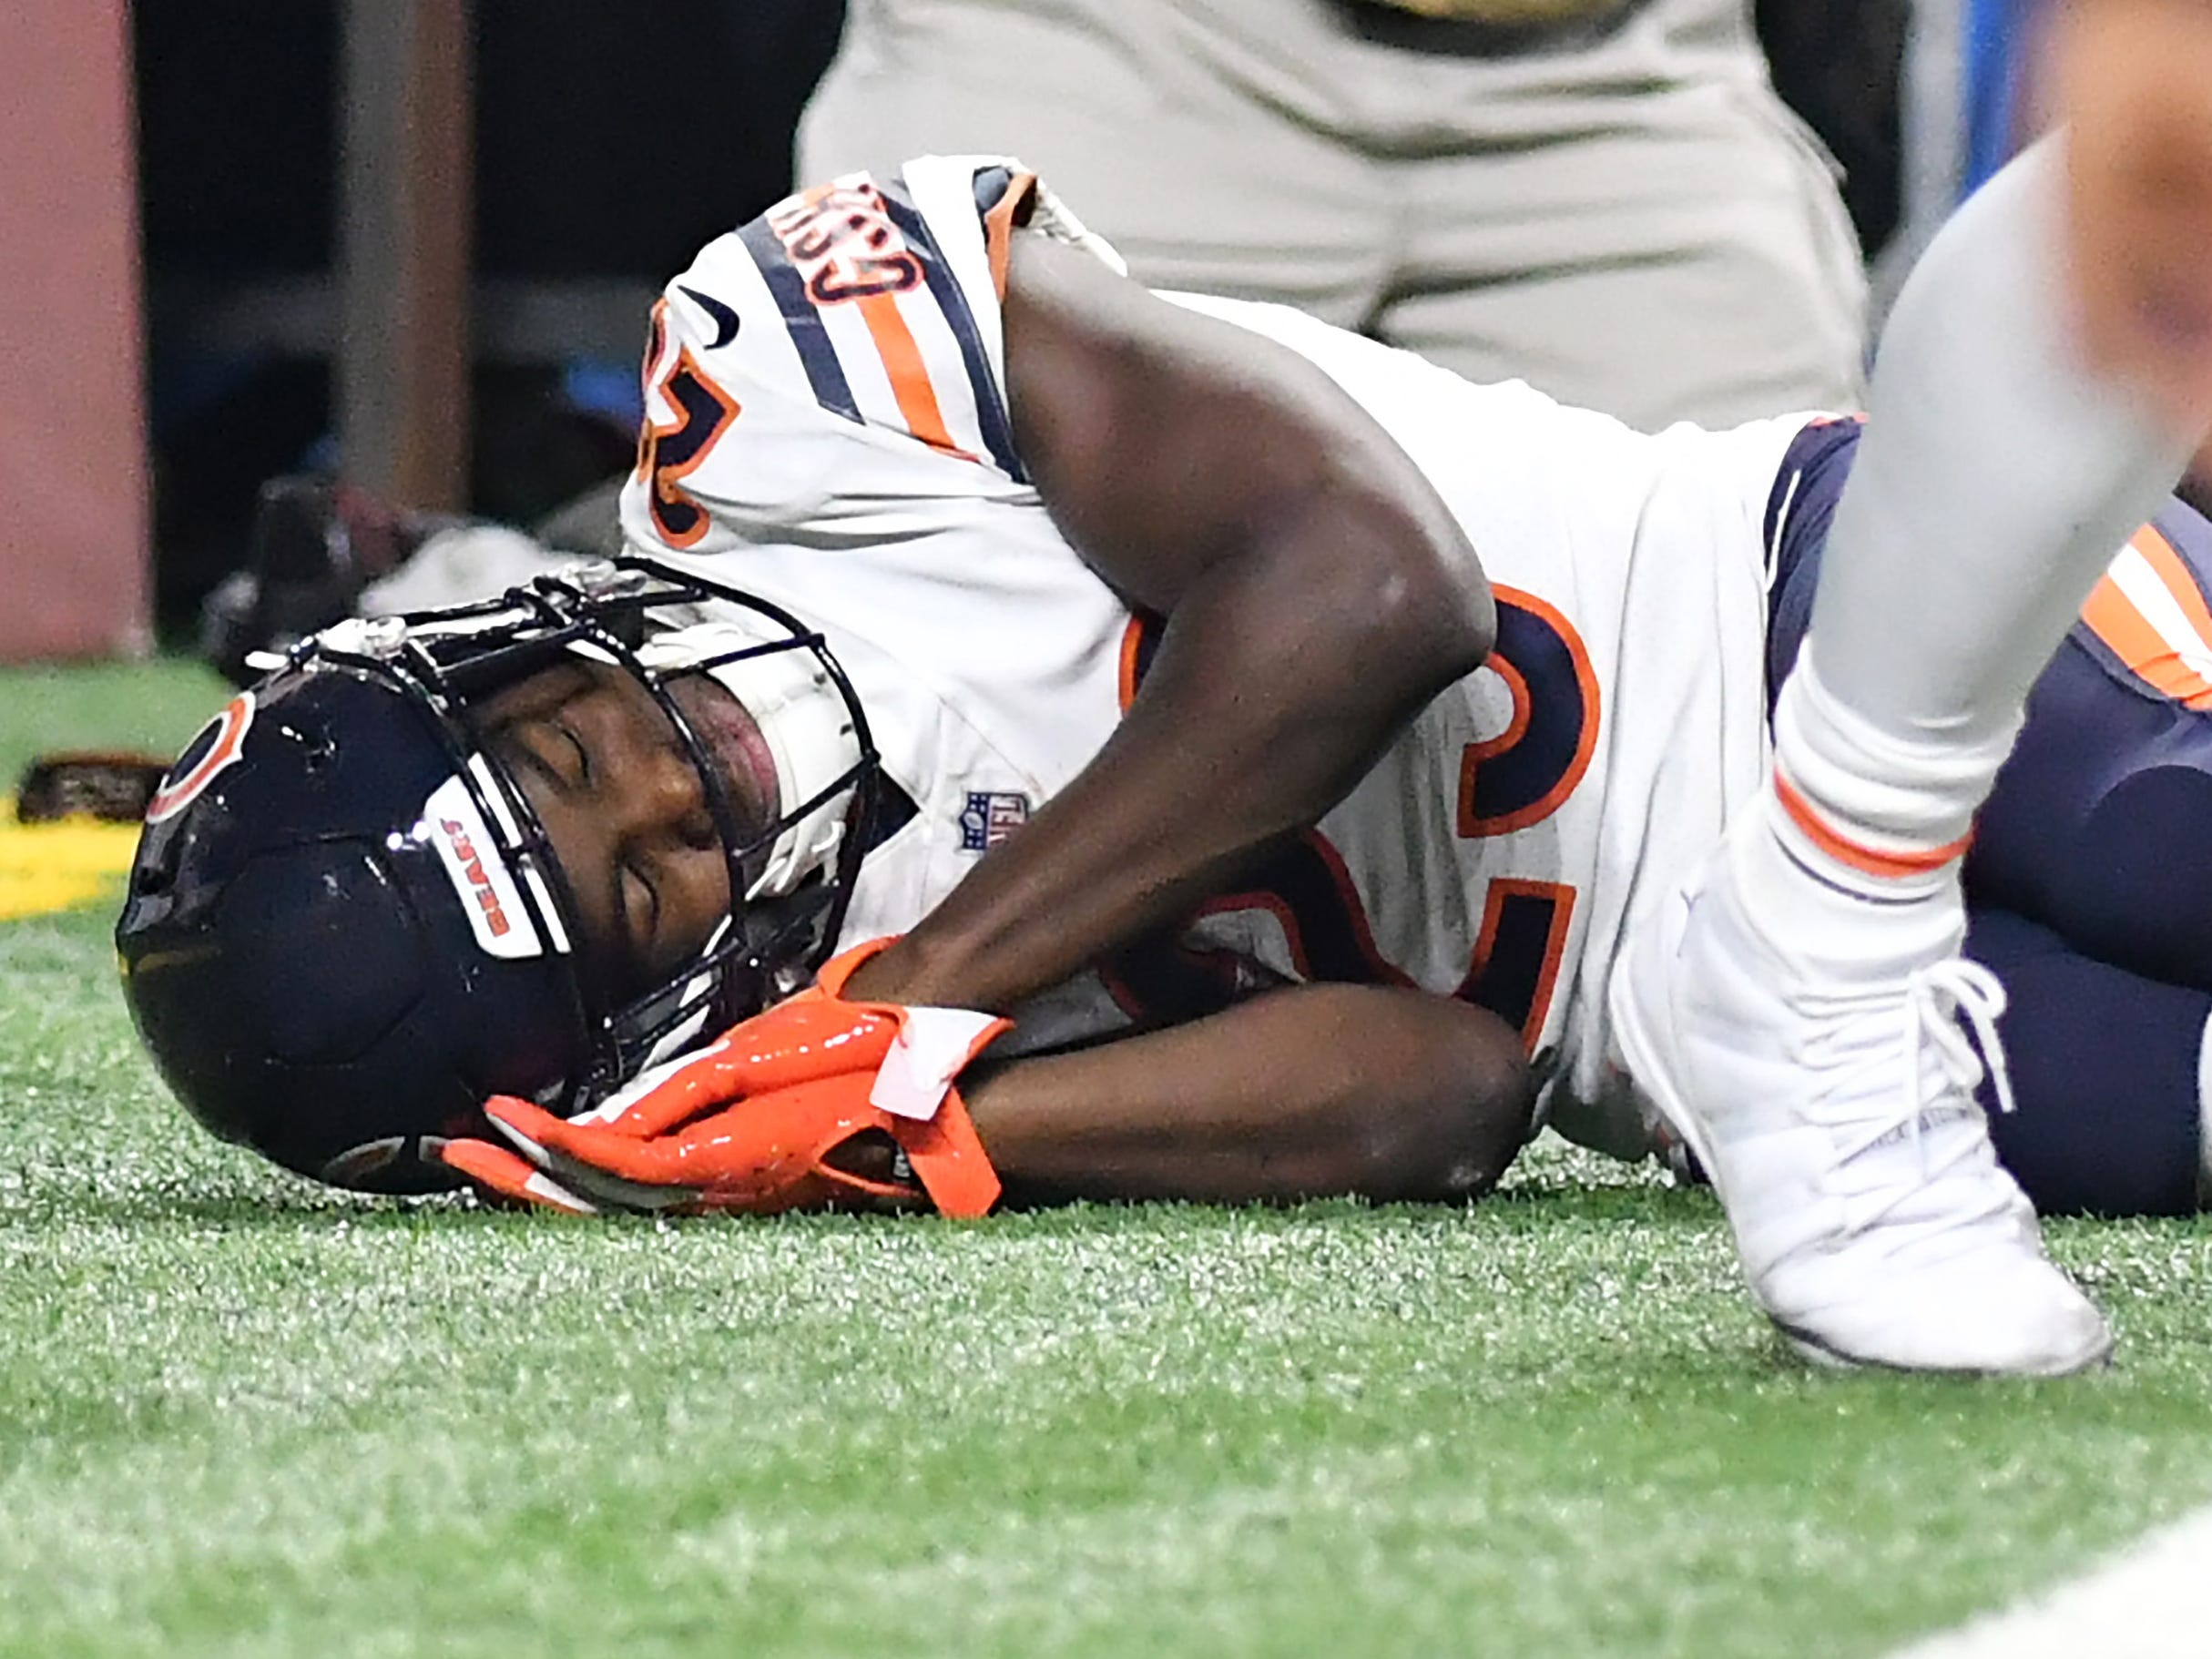 Bears' Tarik Cohen acts out taking a nap as part of his post touchdown celebration In the fourth quarter.